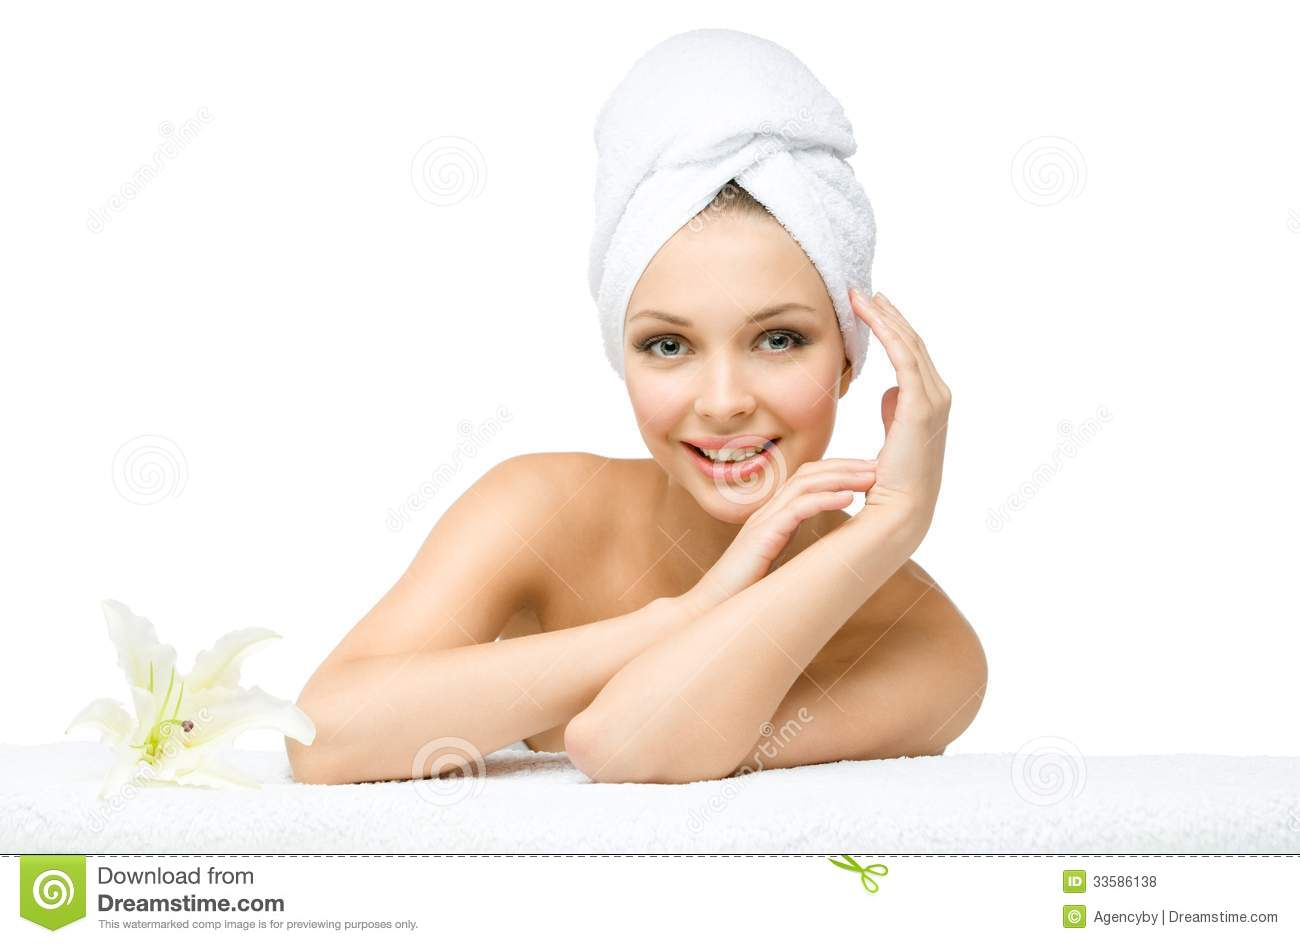 Naked Girl With Towel On Head Touches Face Royalty Free Stock Photos -3552